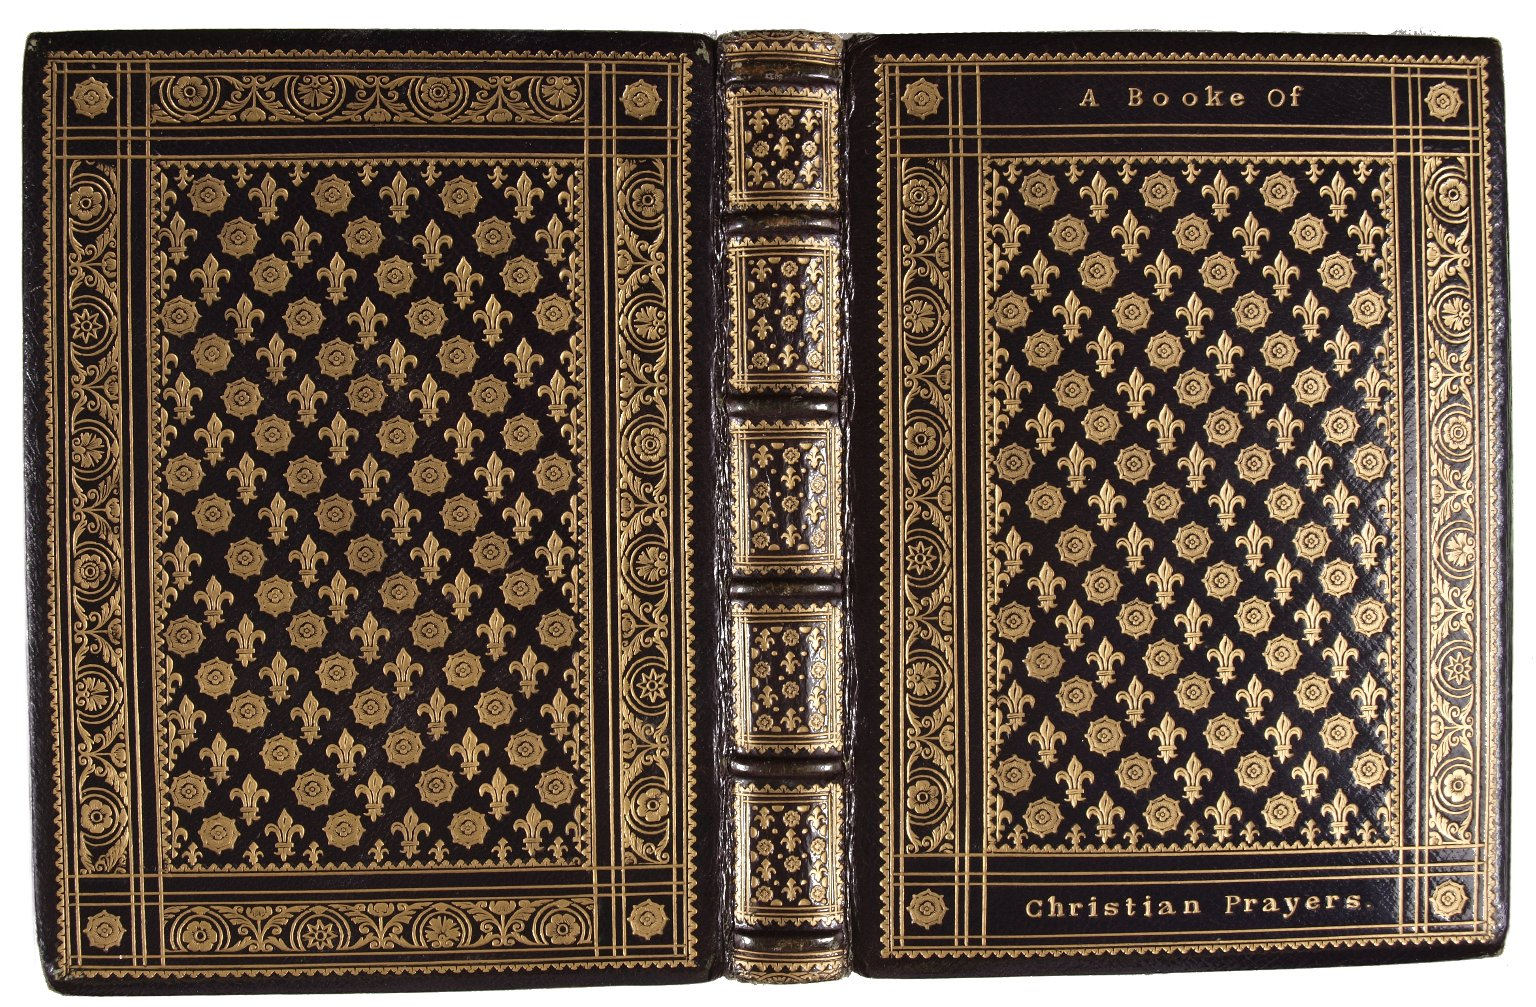 Open covers, STC 6431 copy 1.